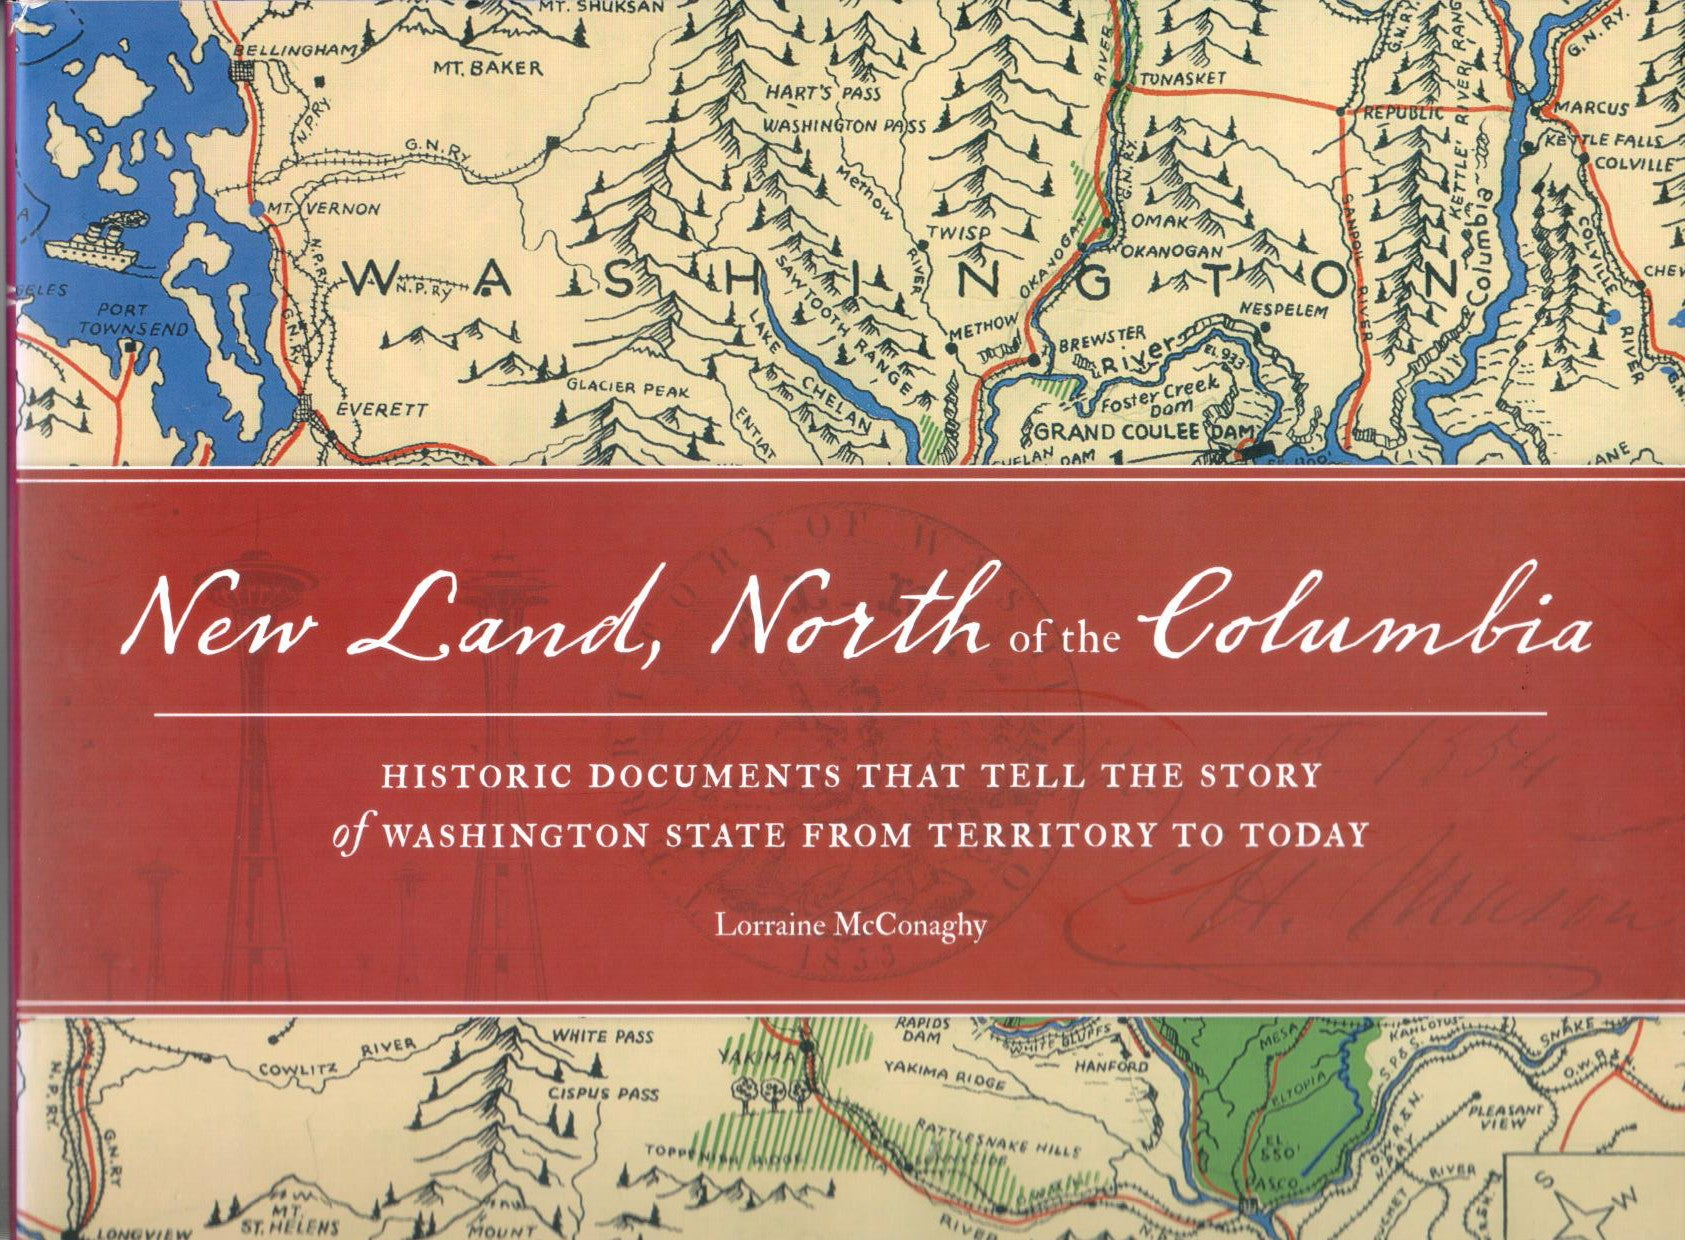 New Land, North of the Columbia; Historic Documents that Tell the Story of Washington State from Territory to Today, by Lorraine McConaghy - Washington State Historical Society